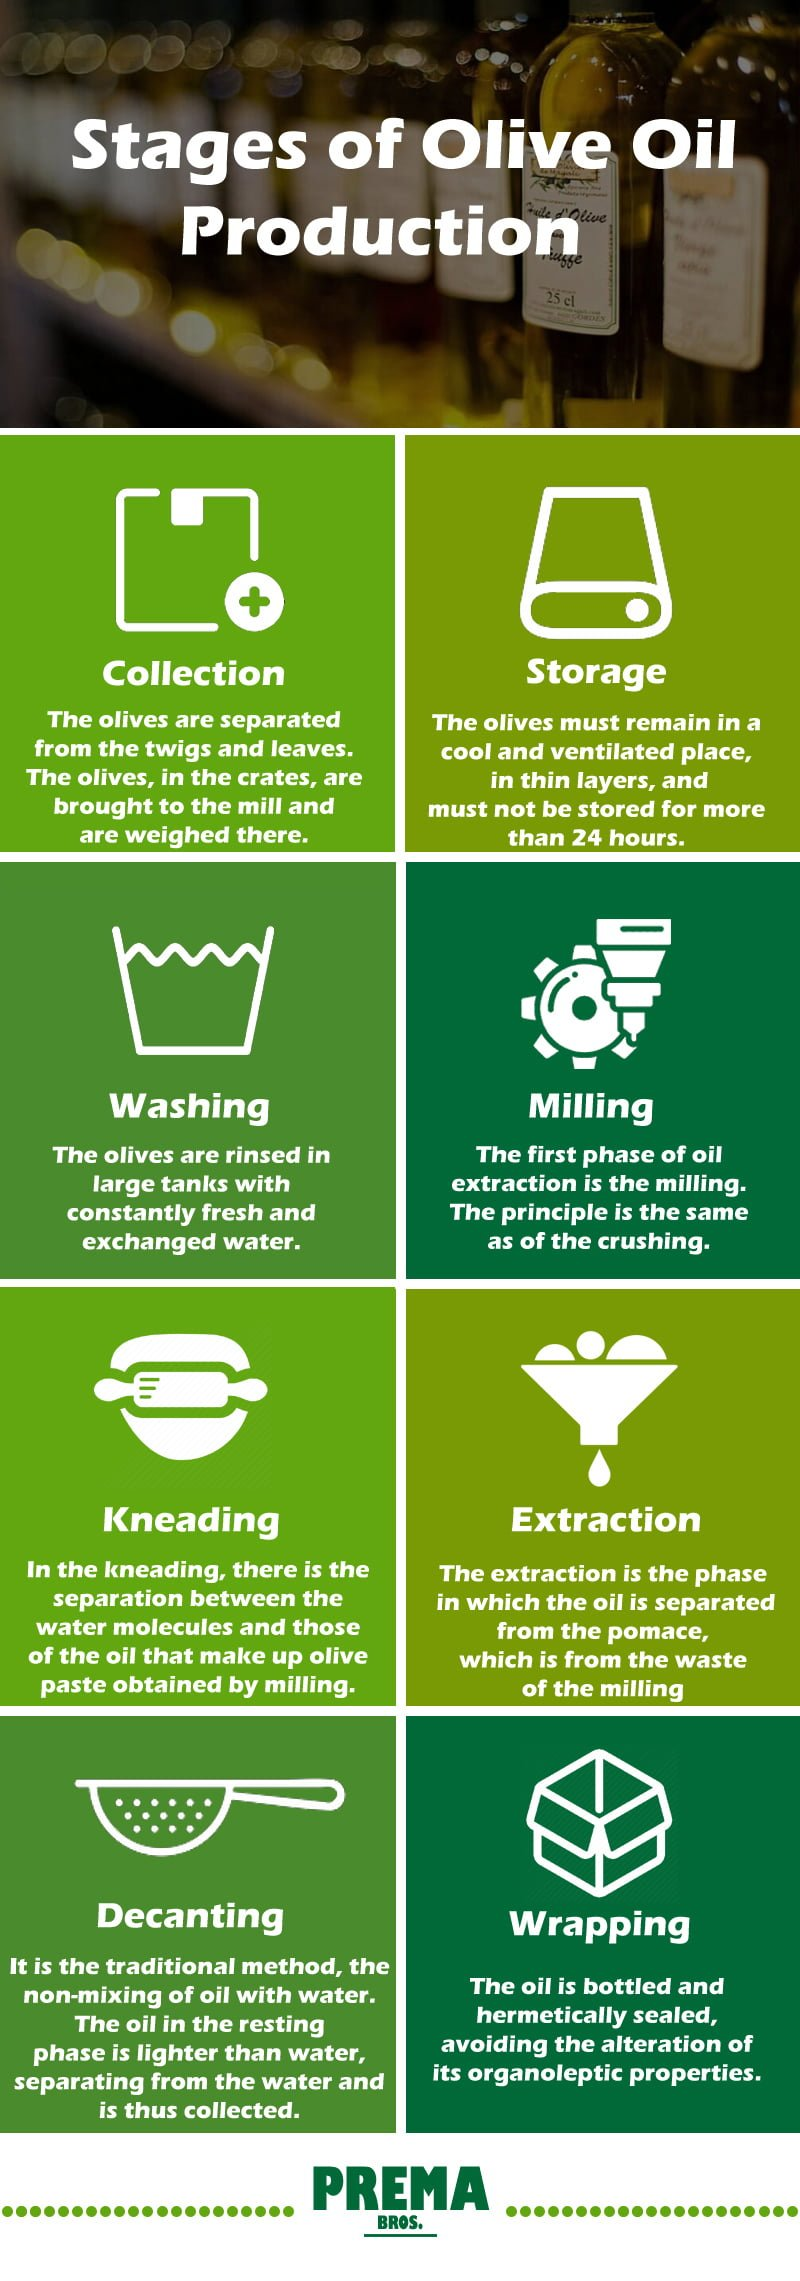 Stages of olive oil production